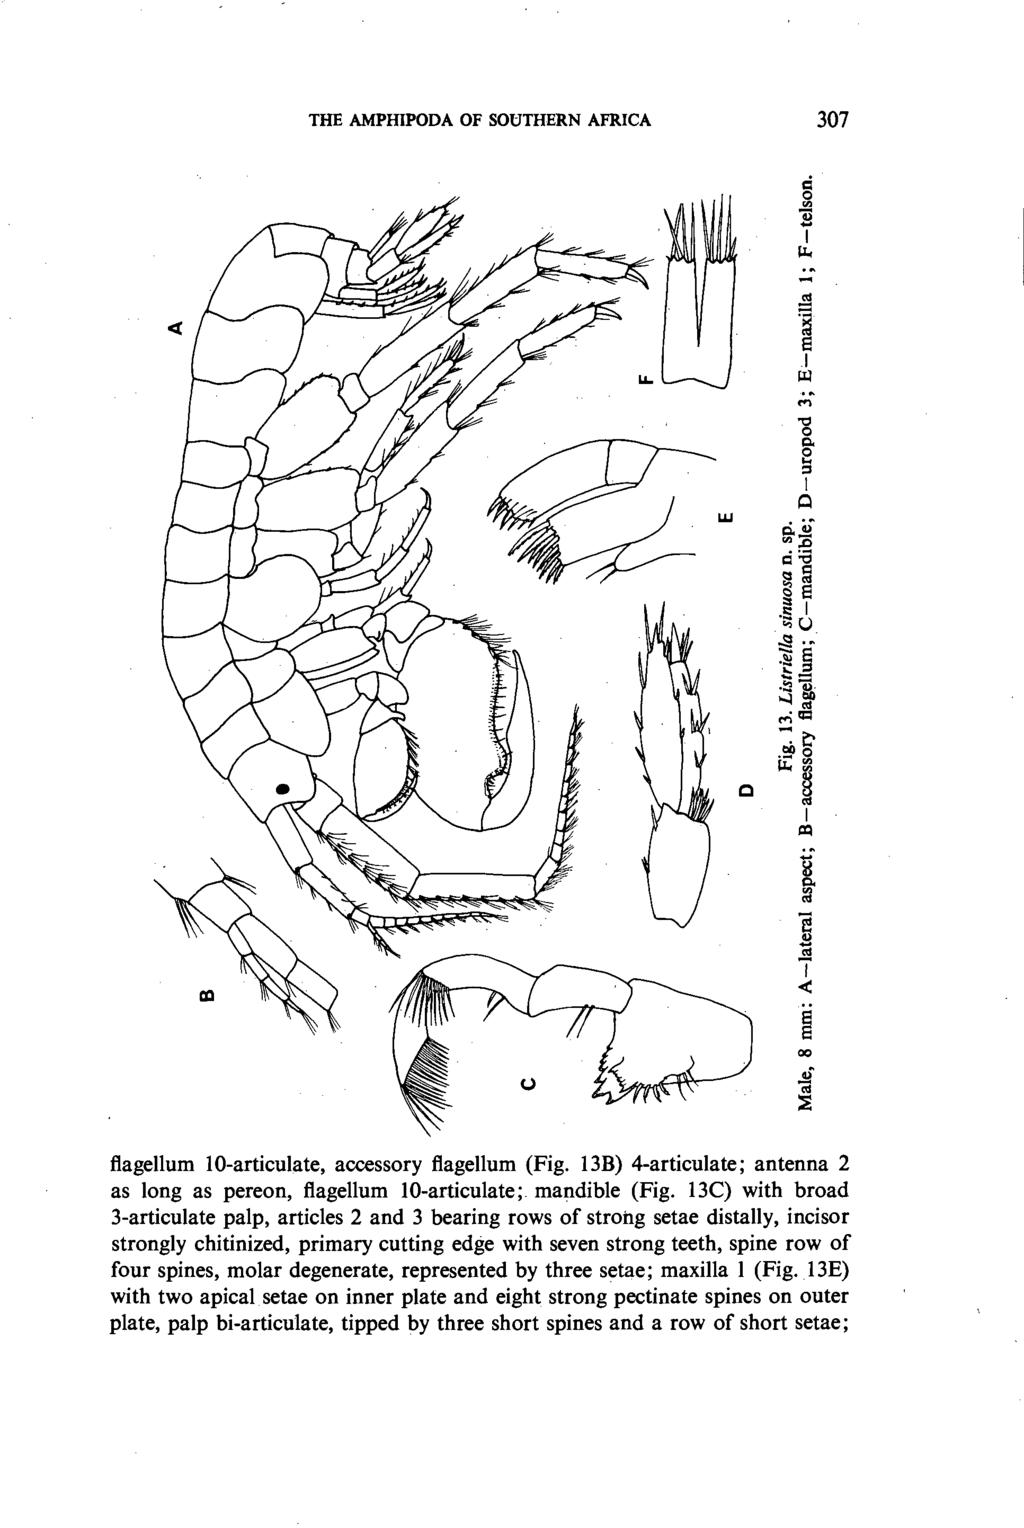 THE AMPHIPODA OF SOUTHERN AFRICA 307 ~.~ e.1 ~ 00 flagellum lo-articulate, accessory flagellum (Fig. 13B) 4-articulate; antenna 2 as long as pereon, flagellum lo-articulate; mandible (Fig.